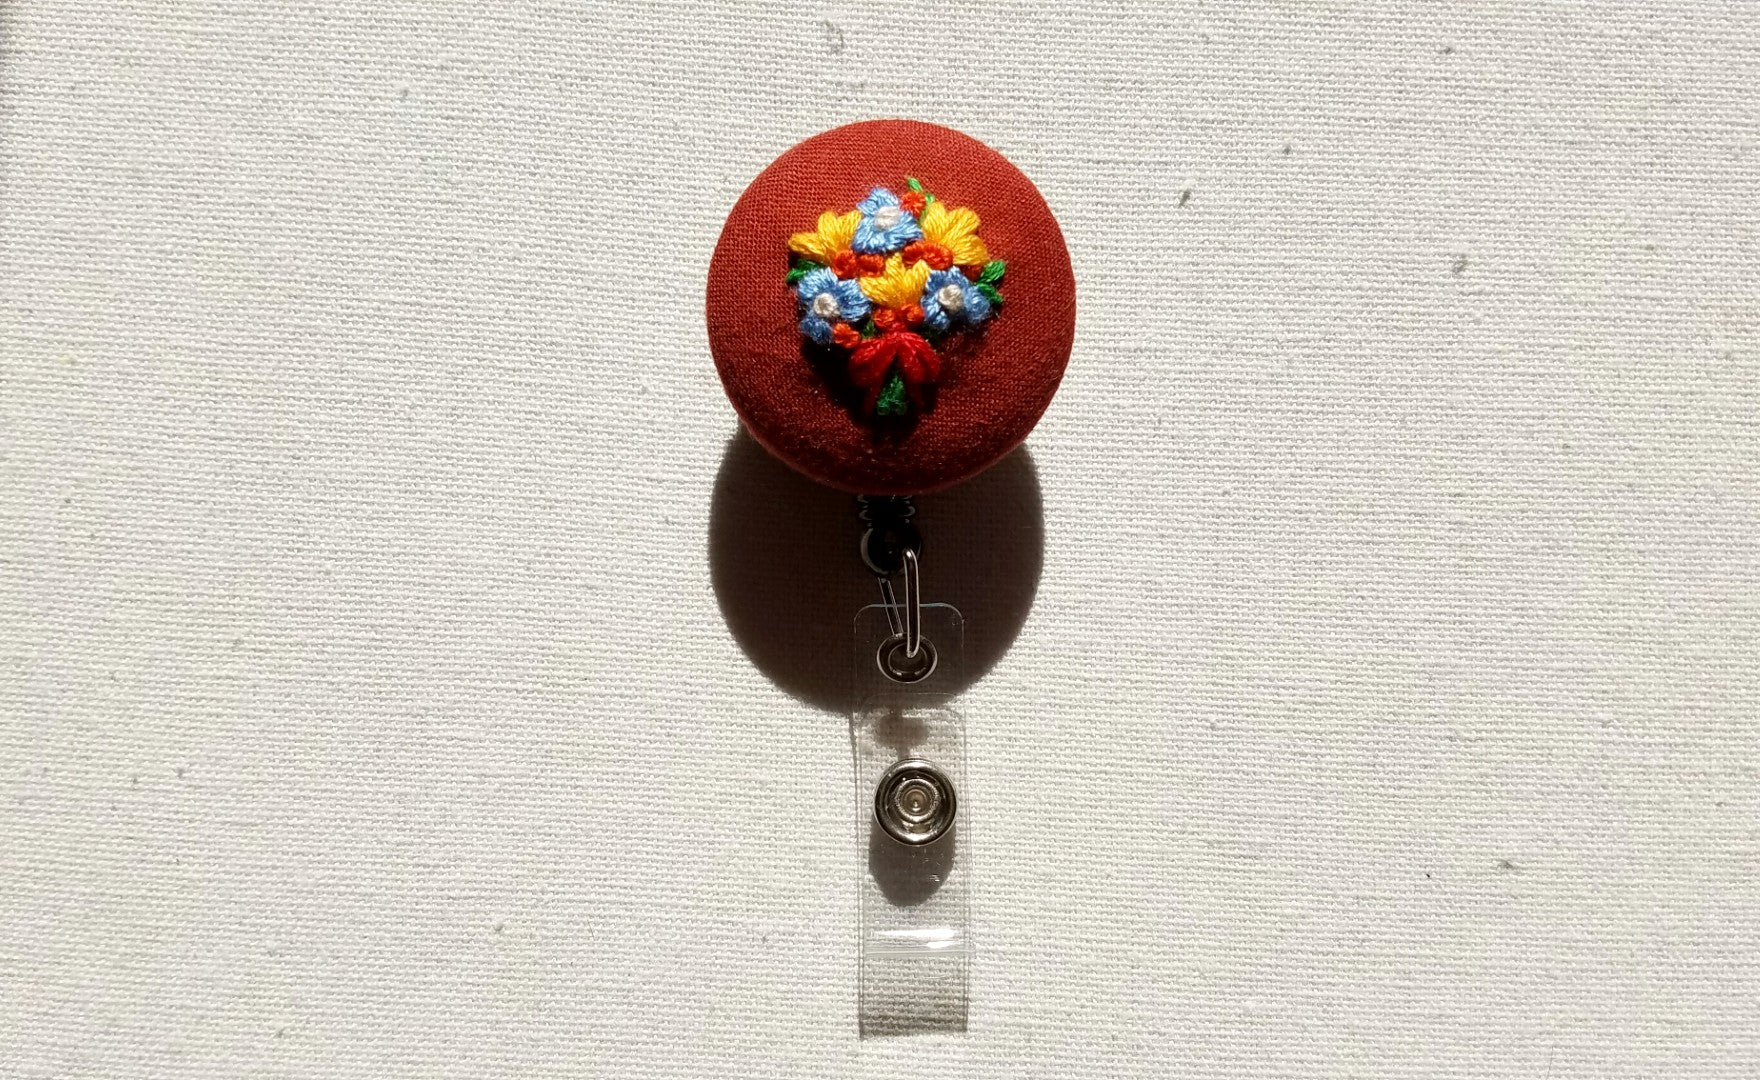 Blue Forget-Me-Nots and Orange Lilies Bouquet on Pumpkin Spice Orange Hand-Embroidered Badge Reel - Little Love Parcels